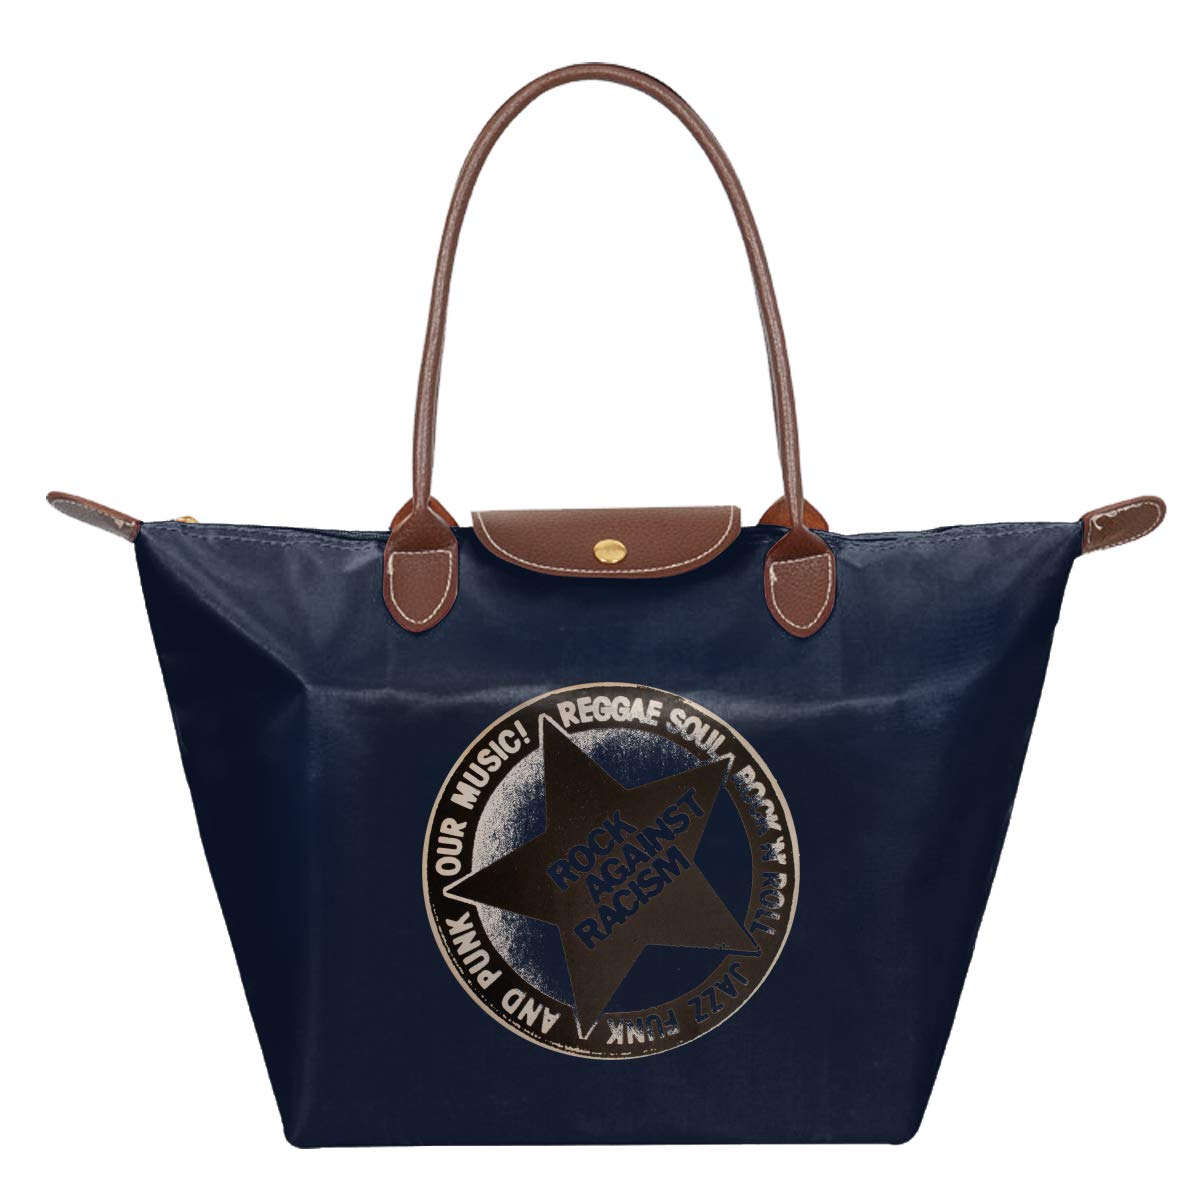 Rock Against Racism International Day For The Elimination Of Racial Discrimination Waterproof Leather Folded Messenger Nylon Bag Travel Tote Hopping Folding School Handbags